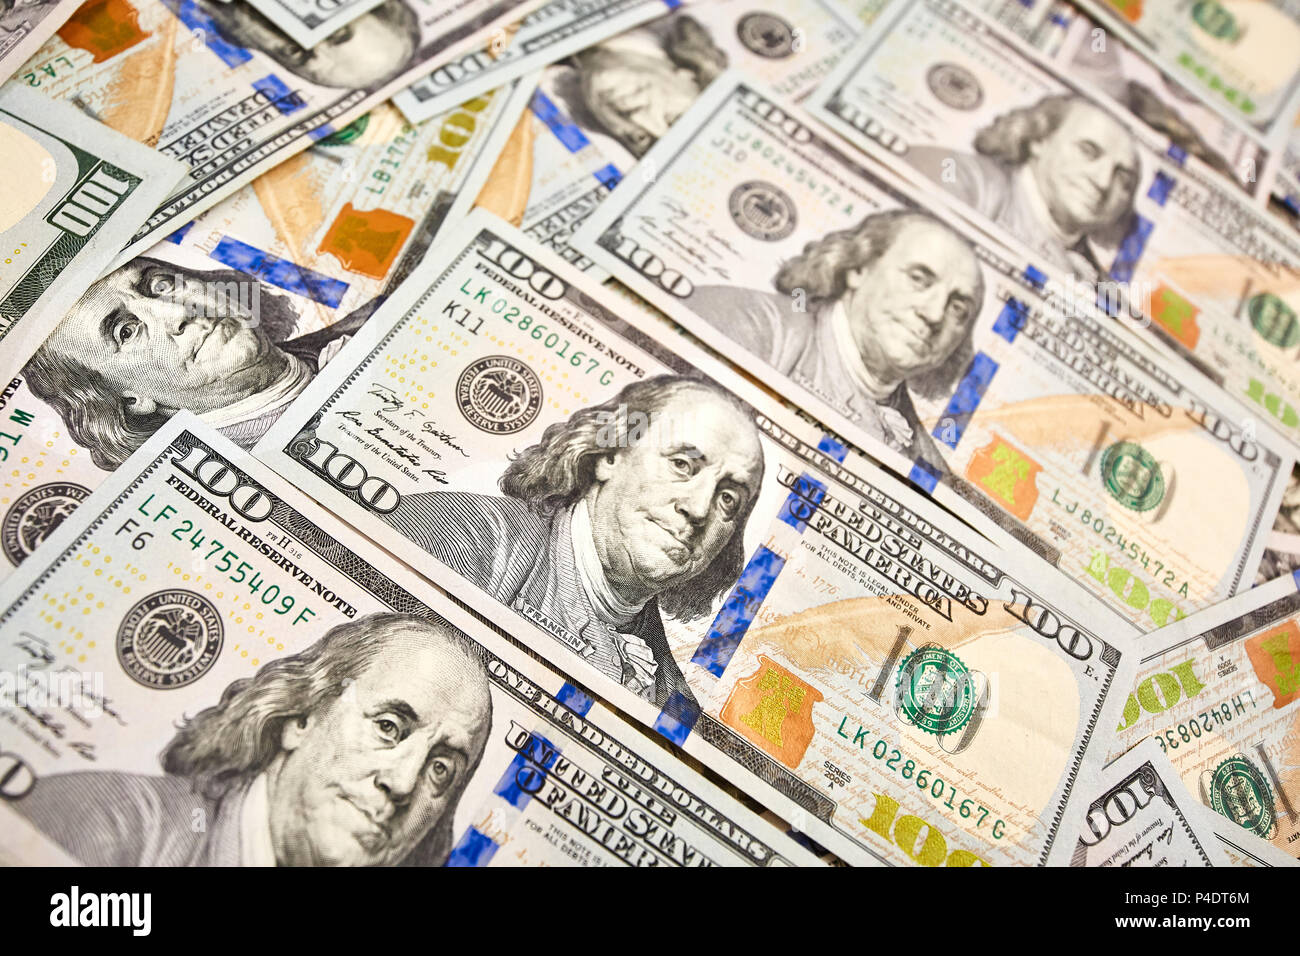 Wallpaper background american money hundred dollar bill view fro stock photo 209287420 alamy - 100 dollar wallpaper ...